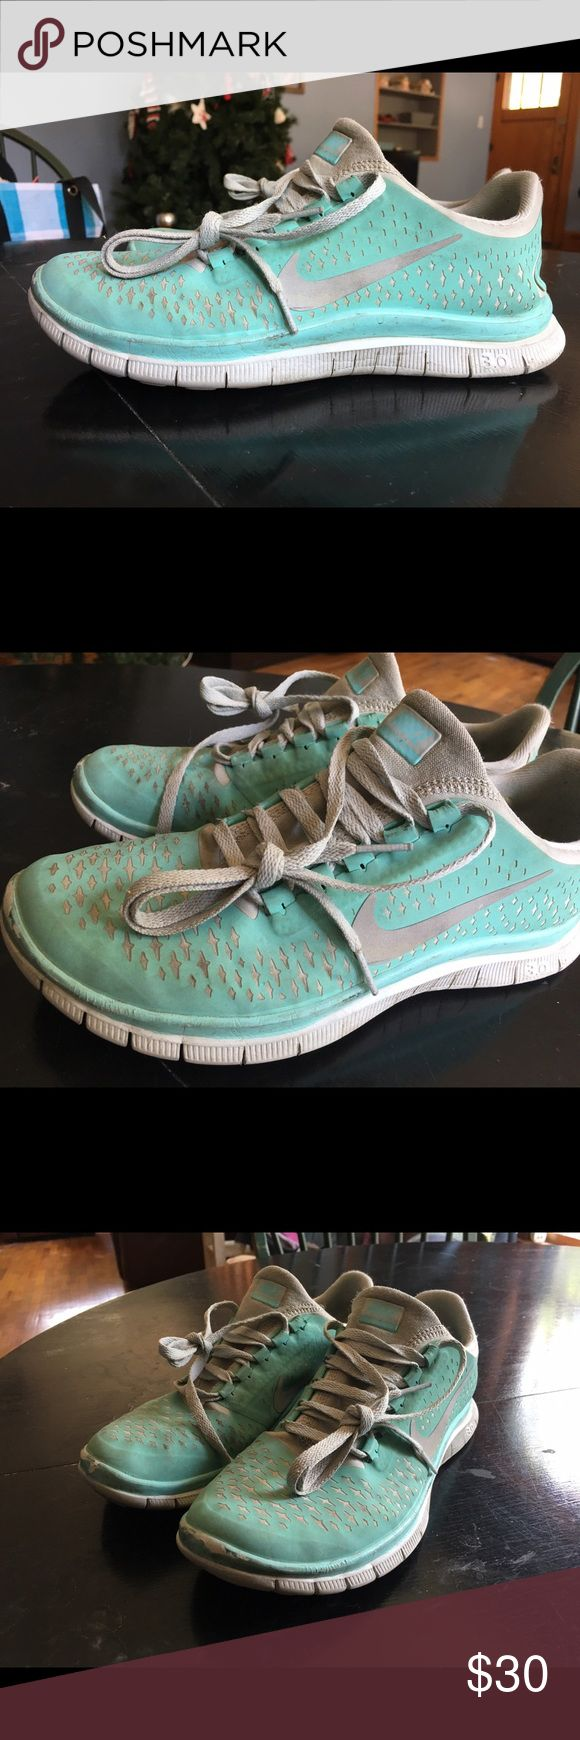 Tiffany Blue Nike Free Runs Sz 8.5 Hi! These shoes have been worn for a while, but with a good clean, would look better! I hope you give them a chance! :) Tiffany blue color size 8.5! Nike Shoes Sneakers